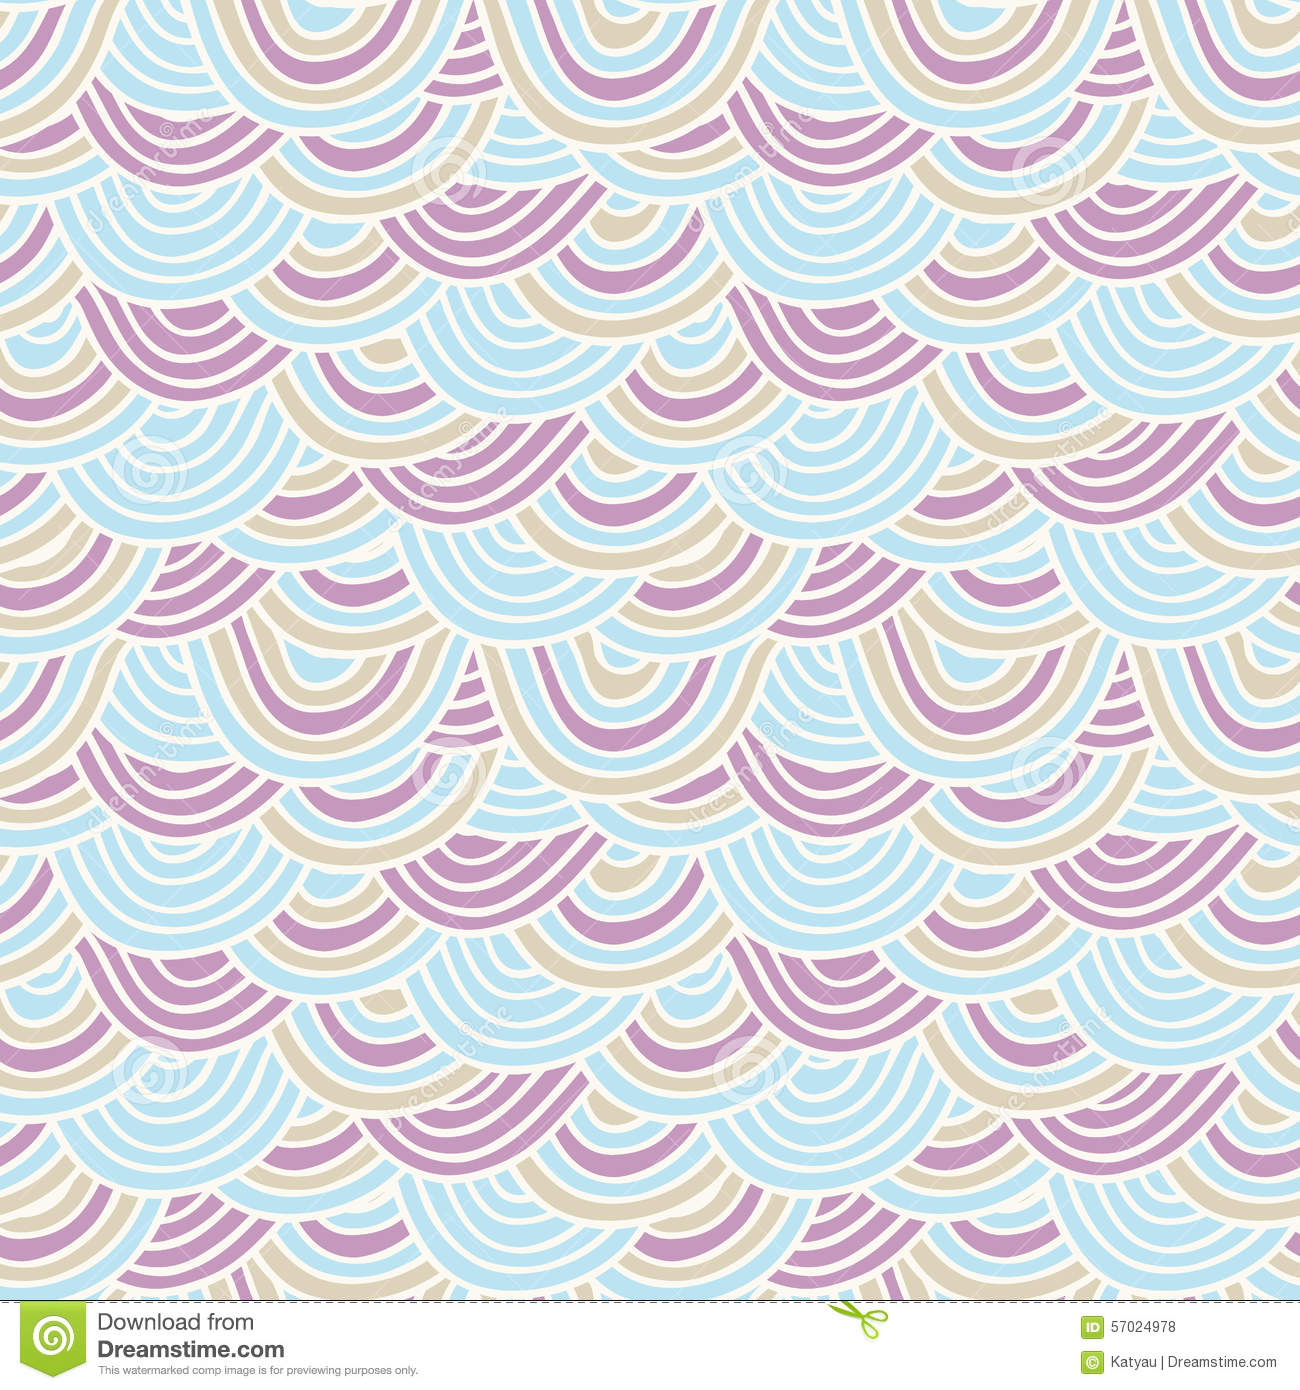 pin crazy patterns backgrounds on pinterest